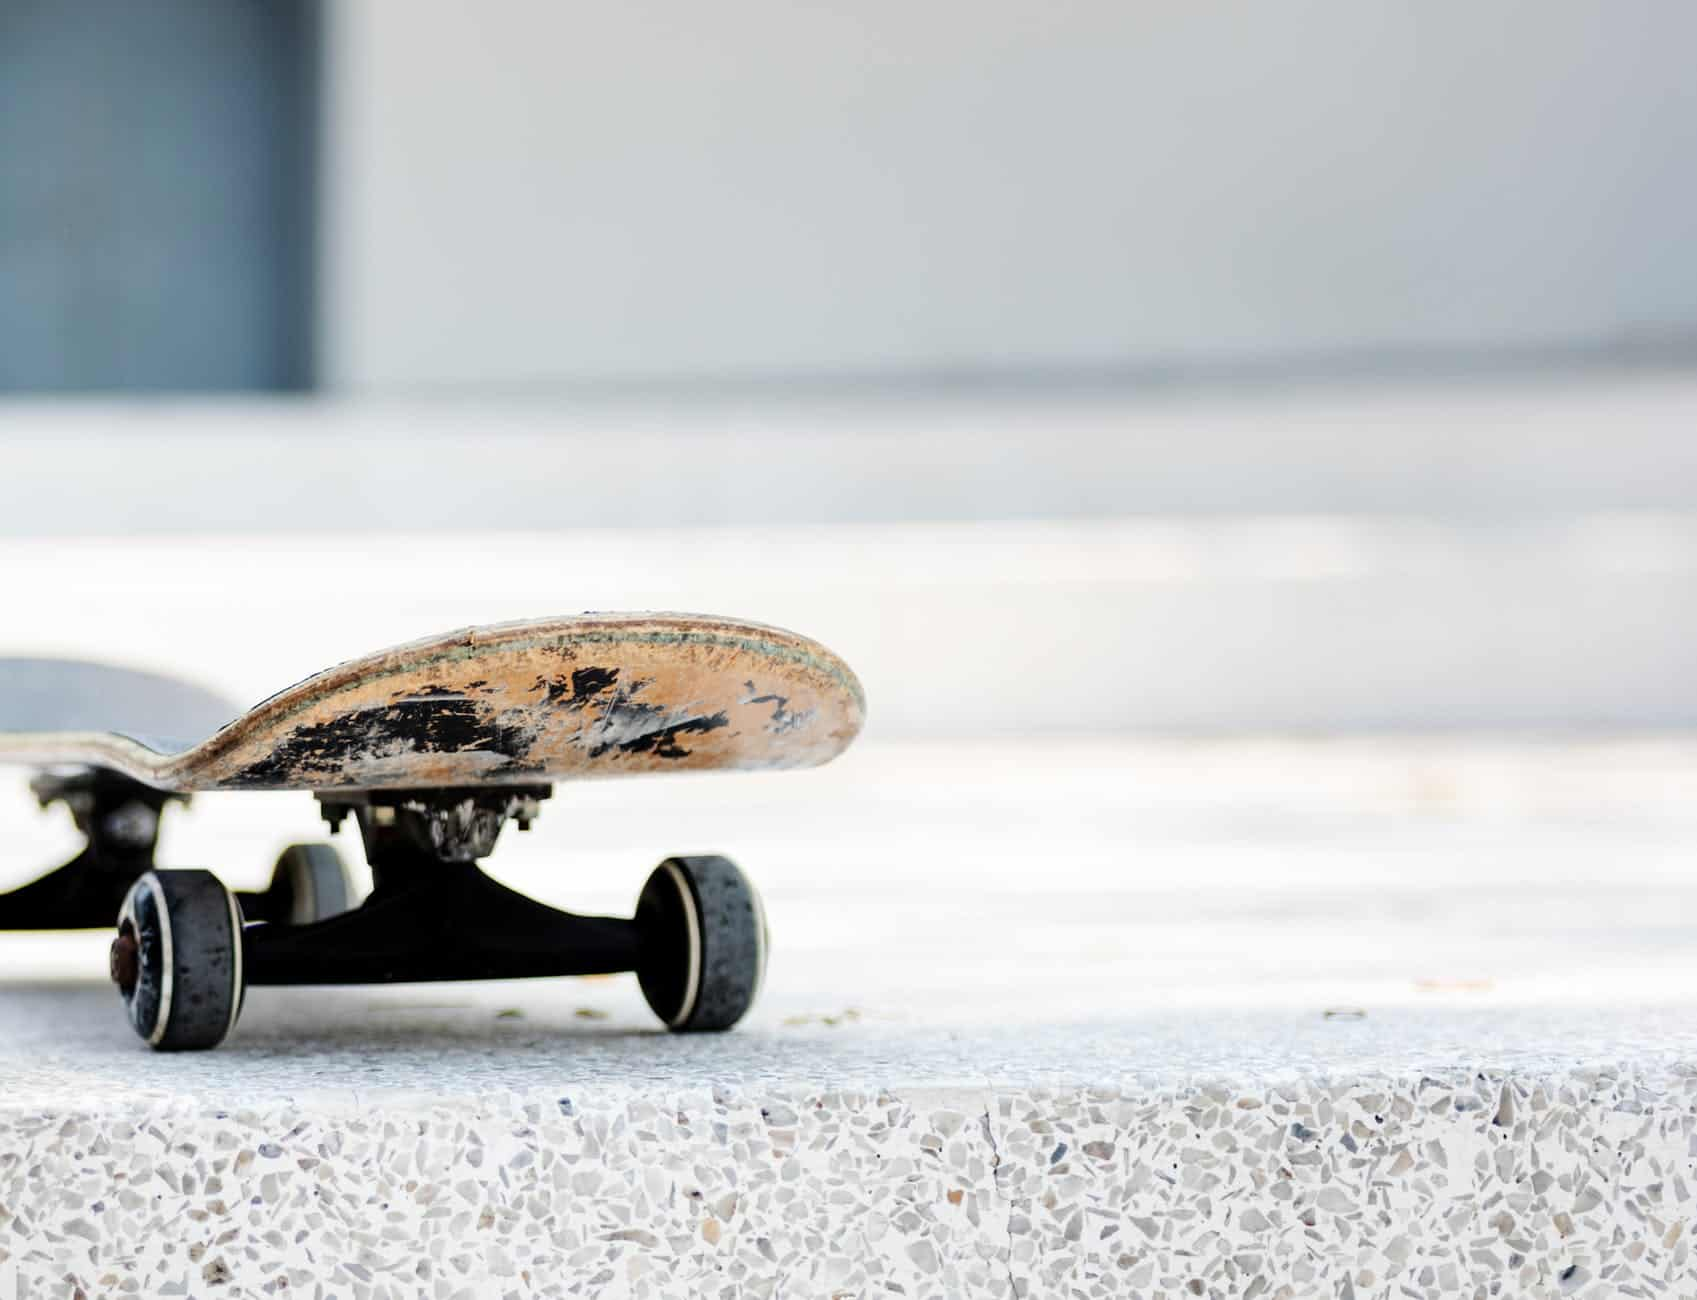 revive skateboard with black wheels in the road